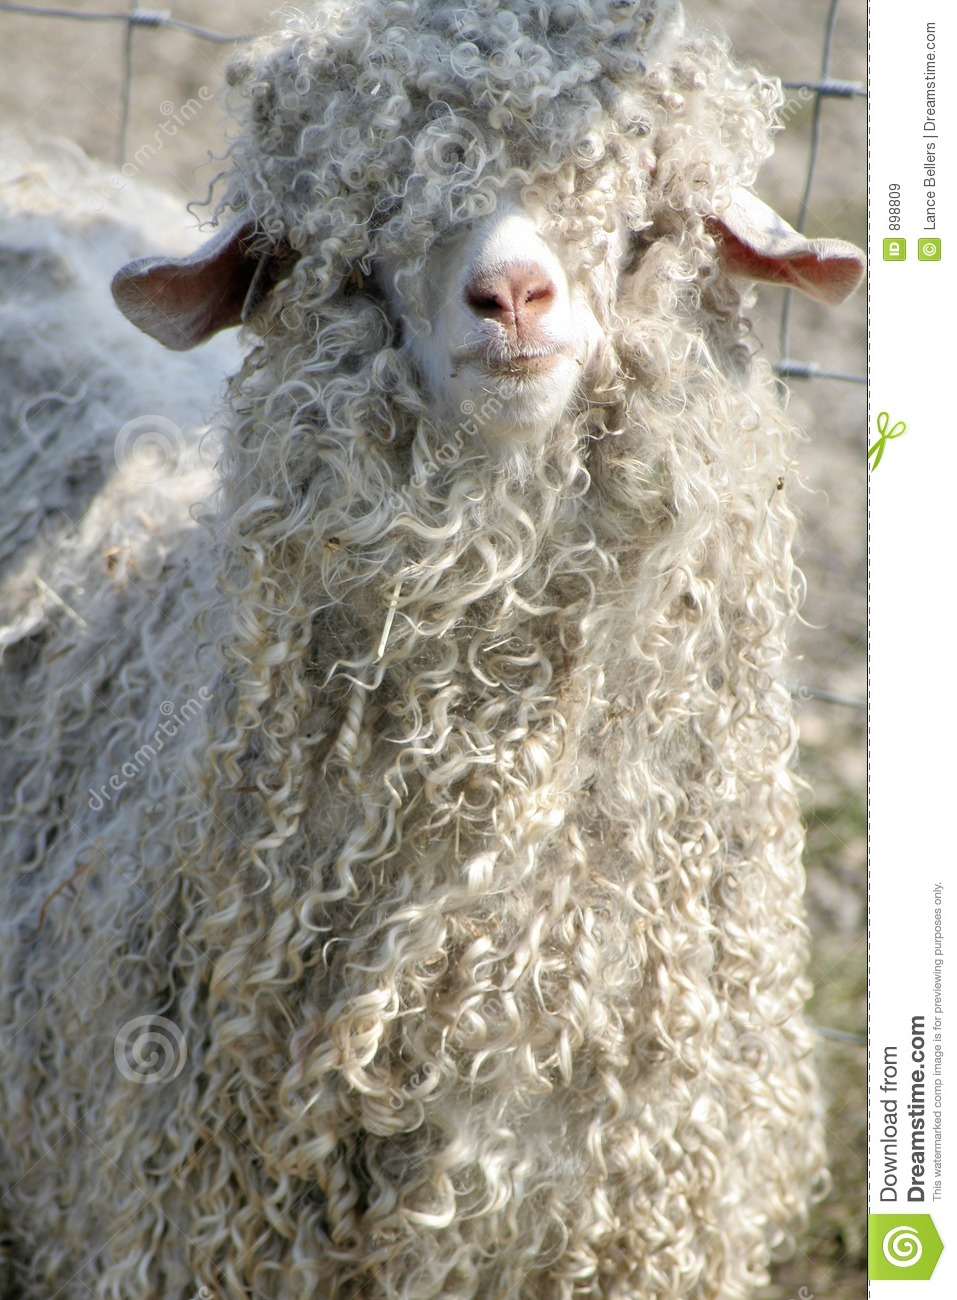 Shaggy Sheep Stock Image Image Of Domestic Snout Shaggy